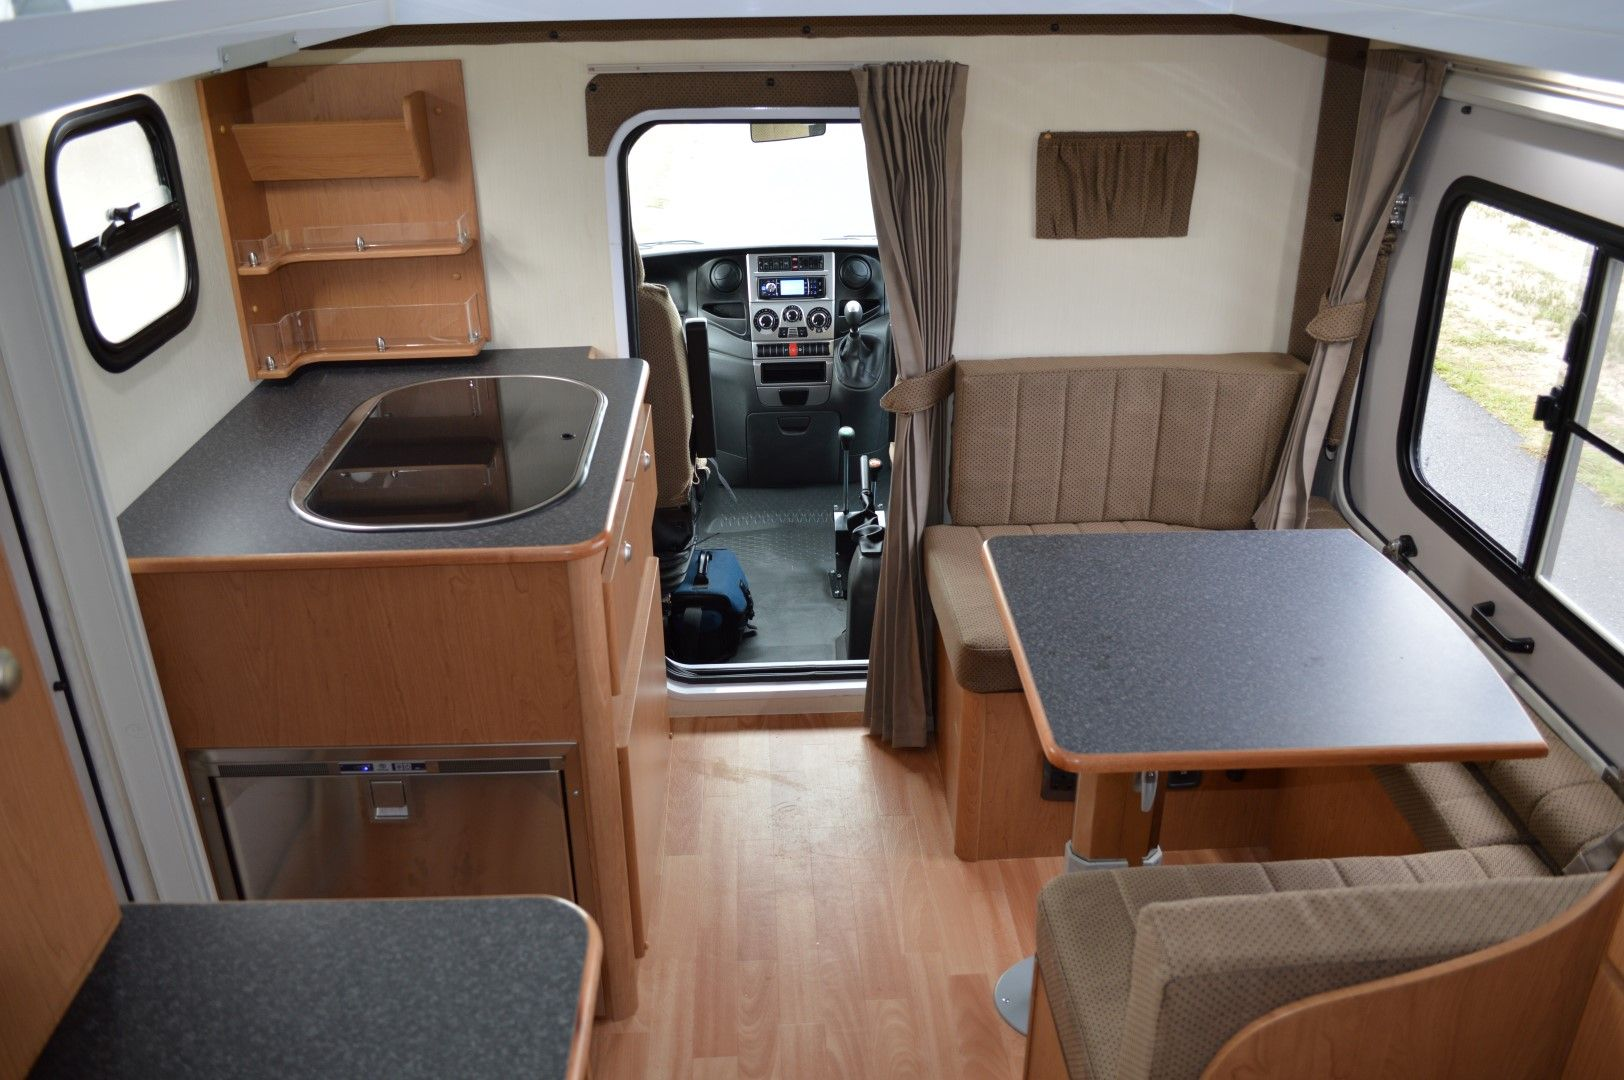 Iveco 4x4 Motorhome This One Is With A Pop Up Roof System